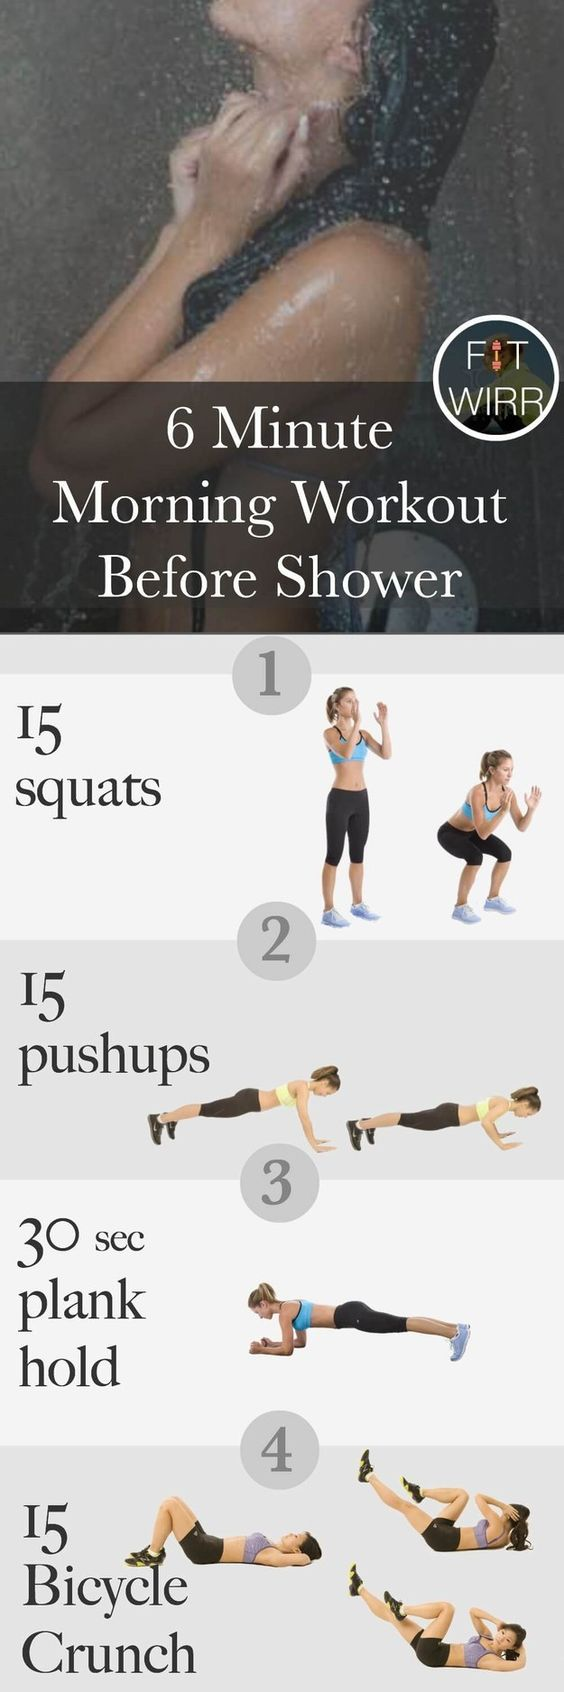 Great workout to do first thing in the morning. It takes just 6 minutes of your time and works your whole body.